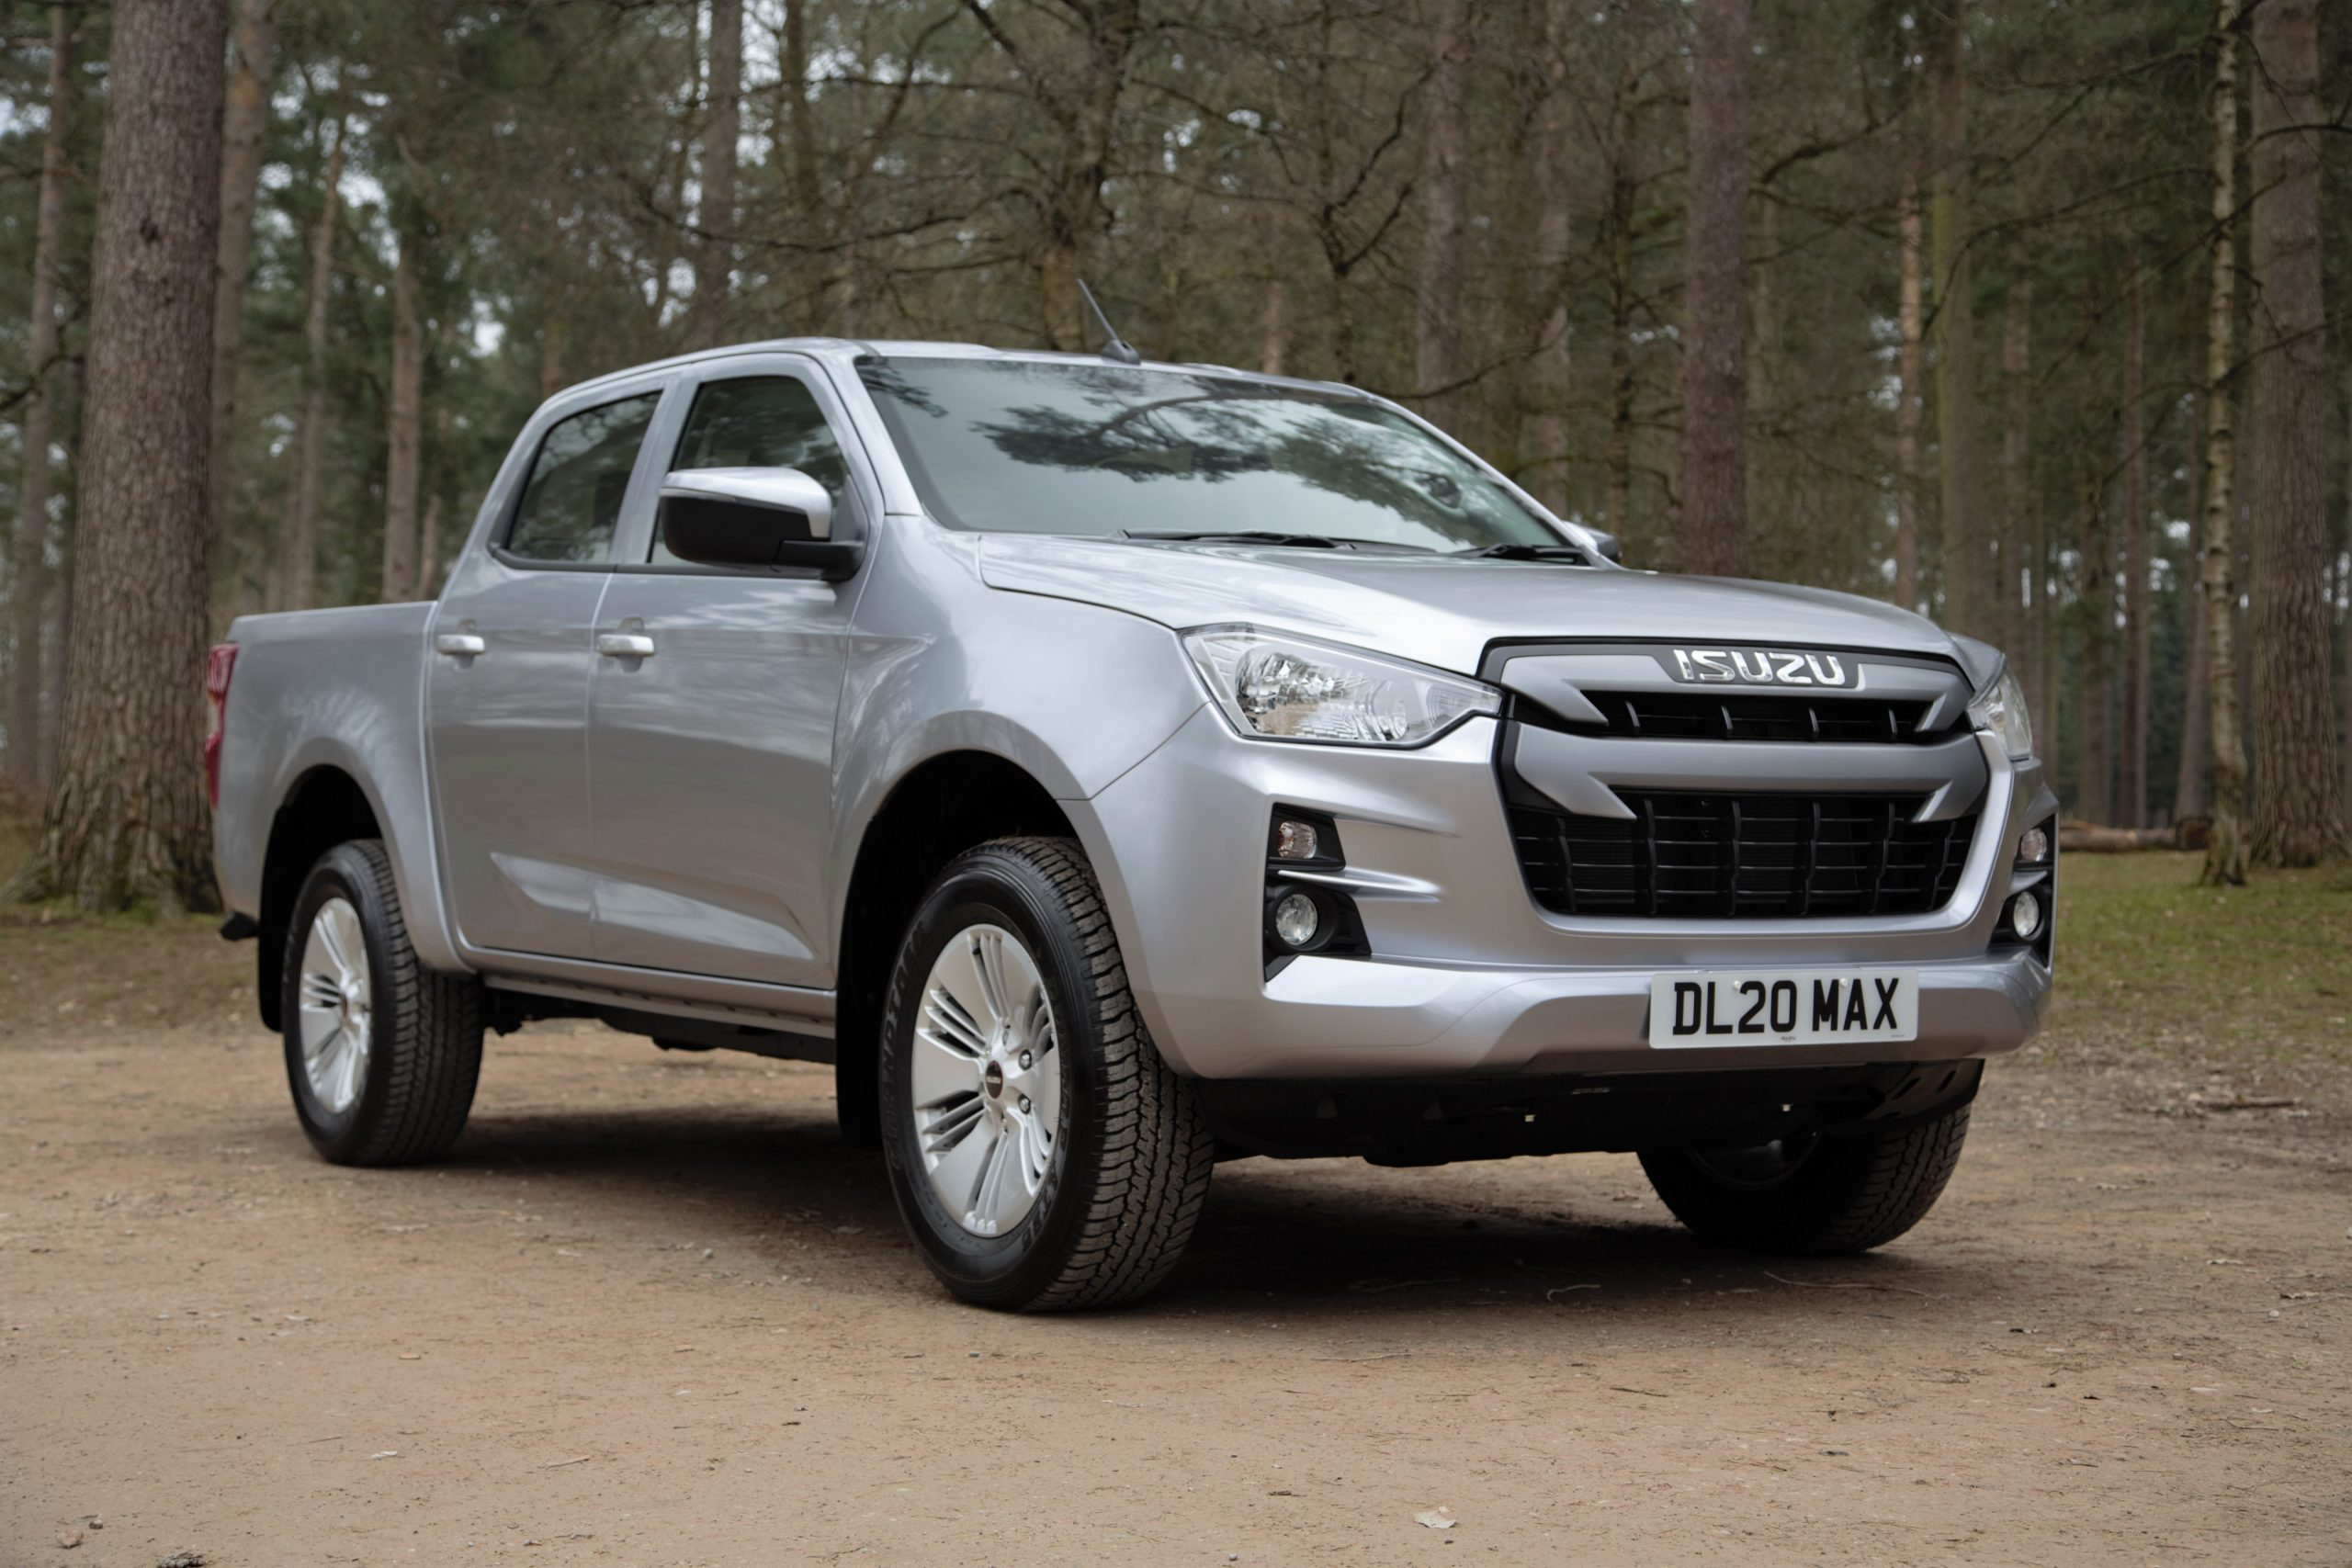 Pick up an all new Isuzu D-Max in 2021